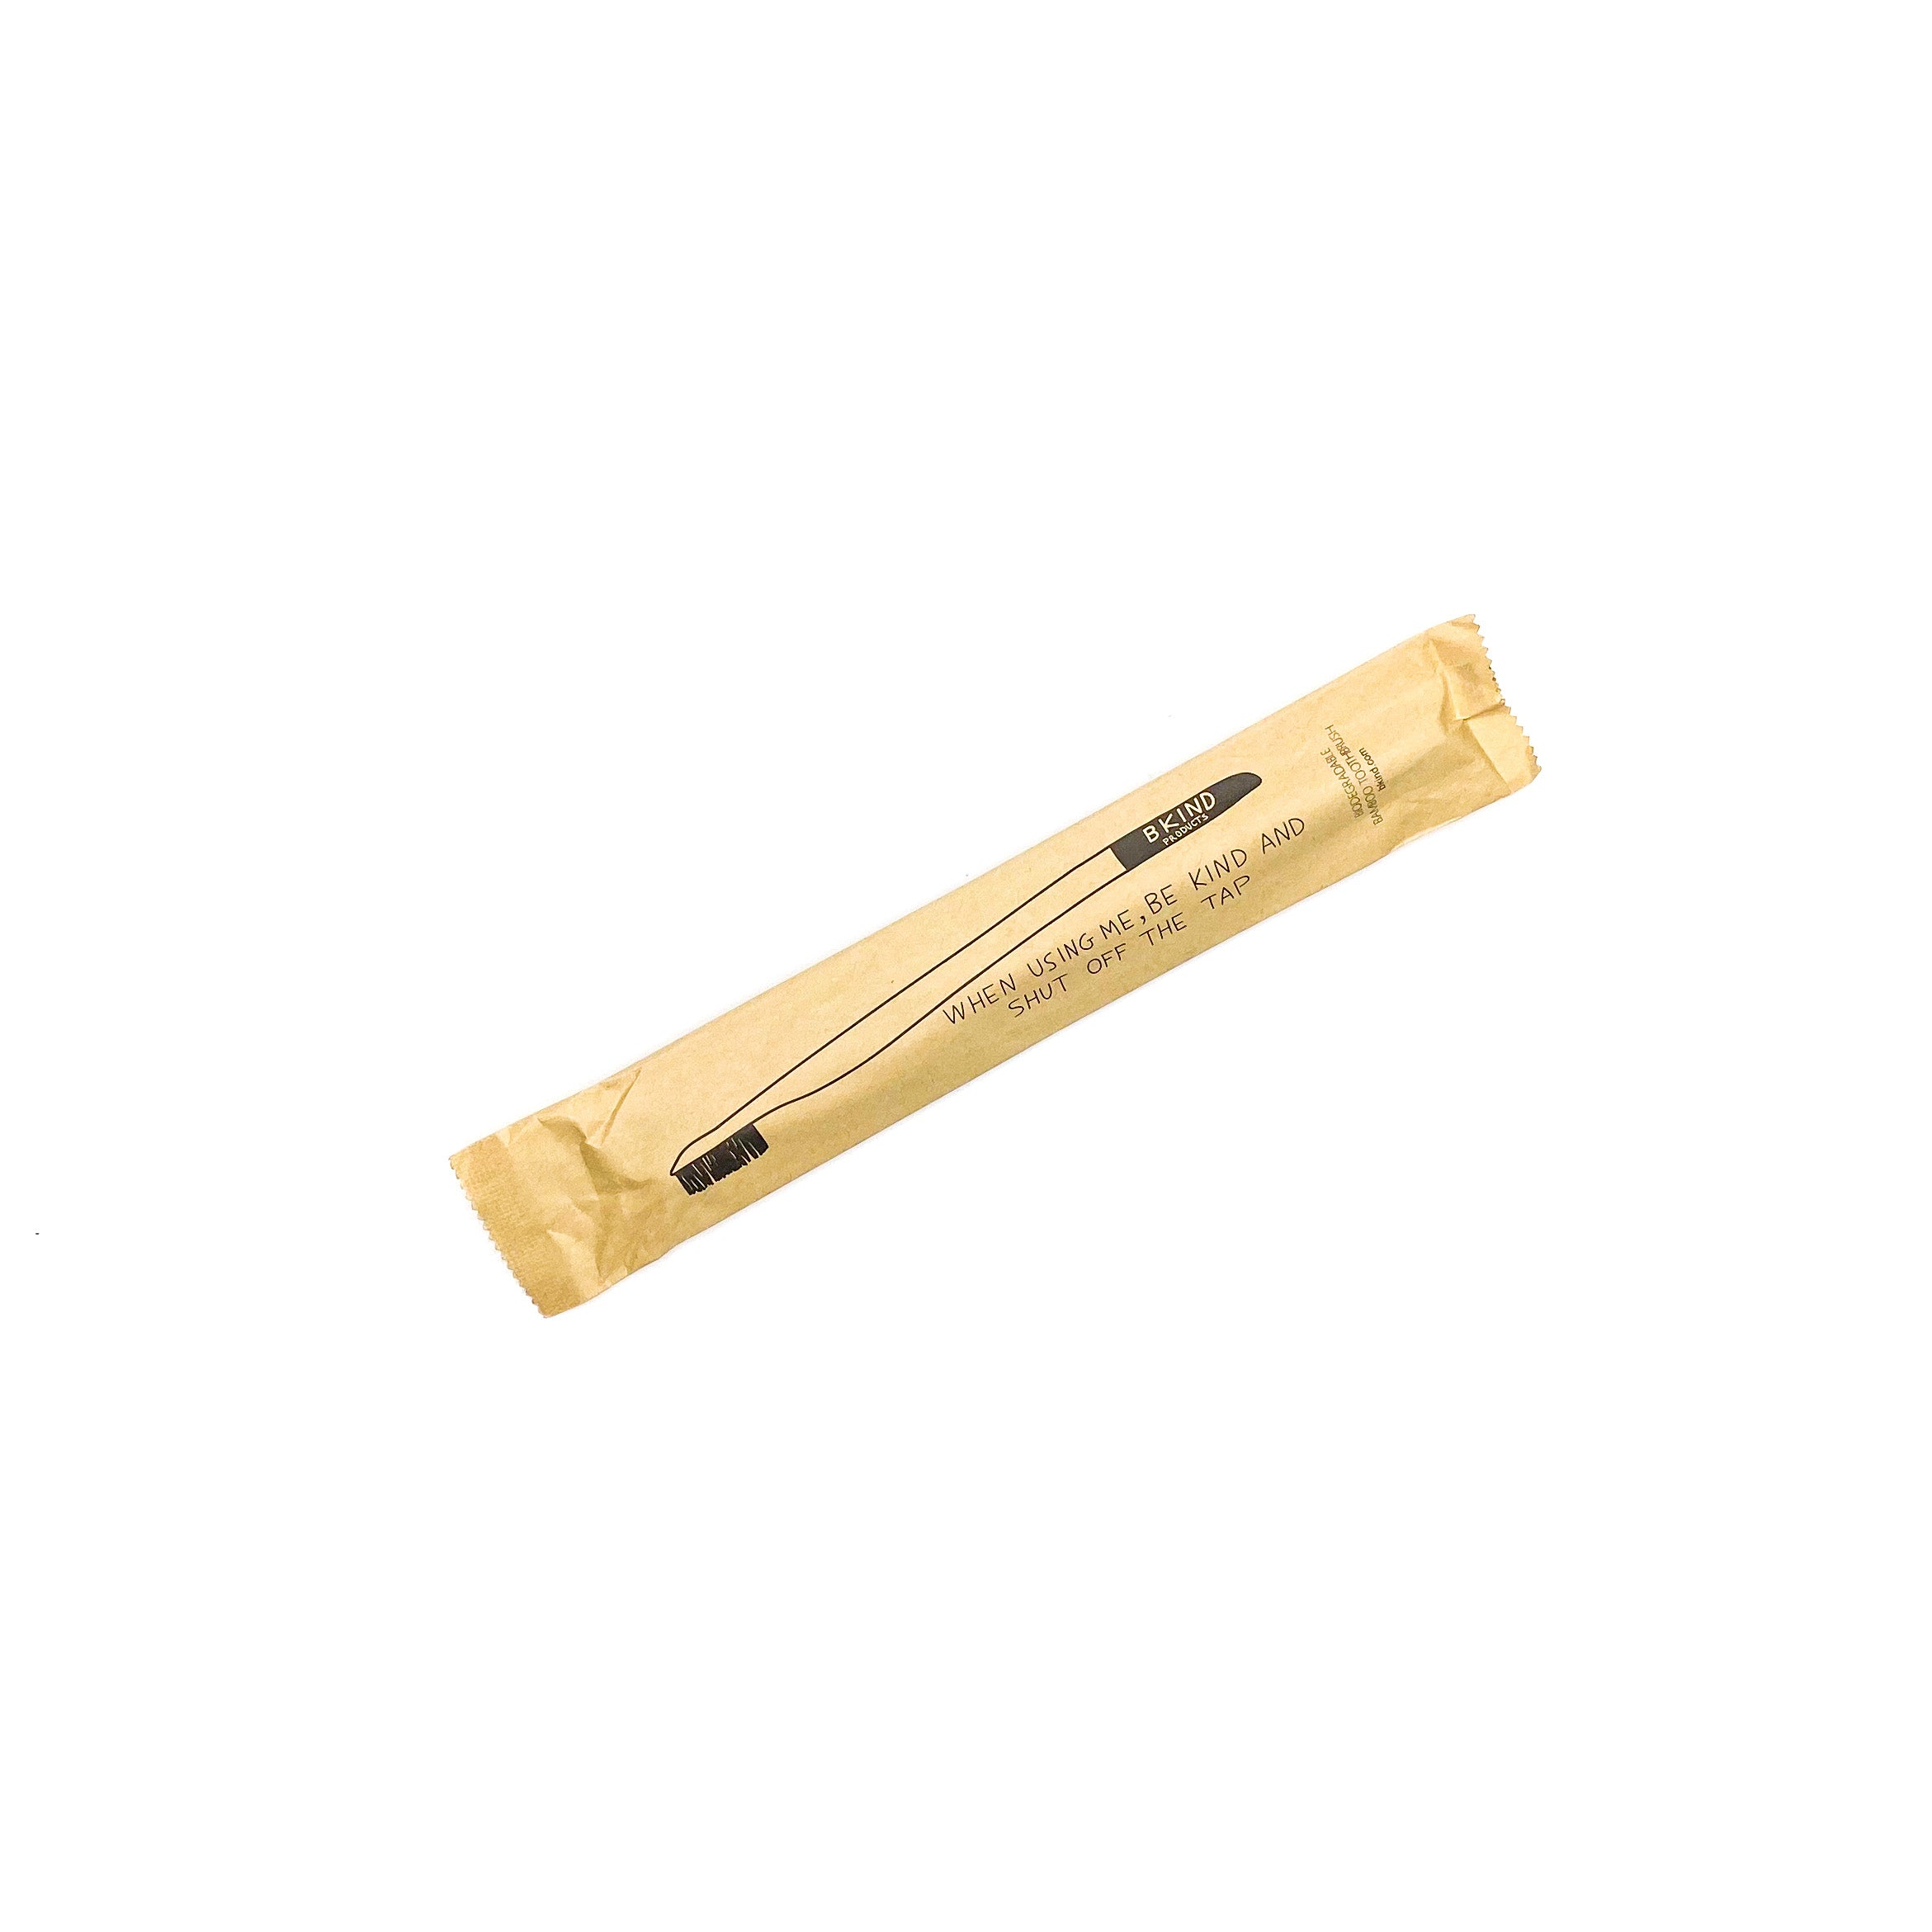 BKIND Biodegradable Bamboo Toothbrush